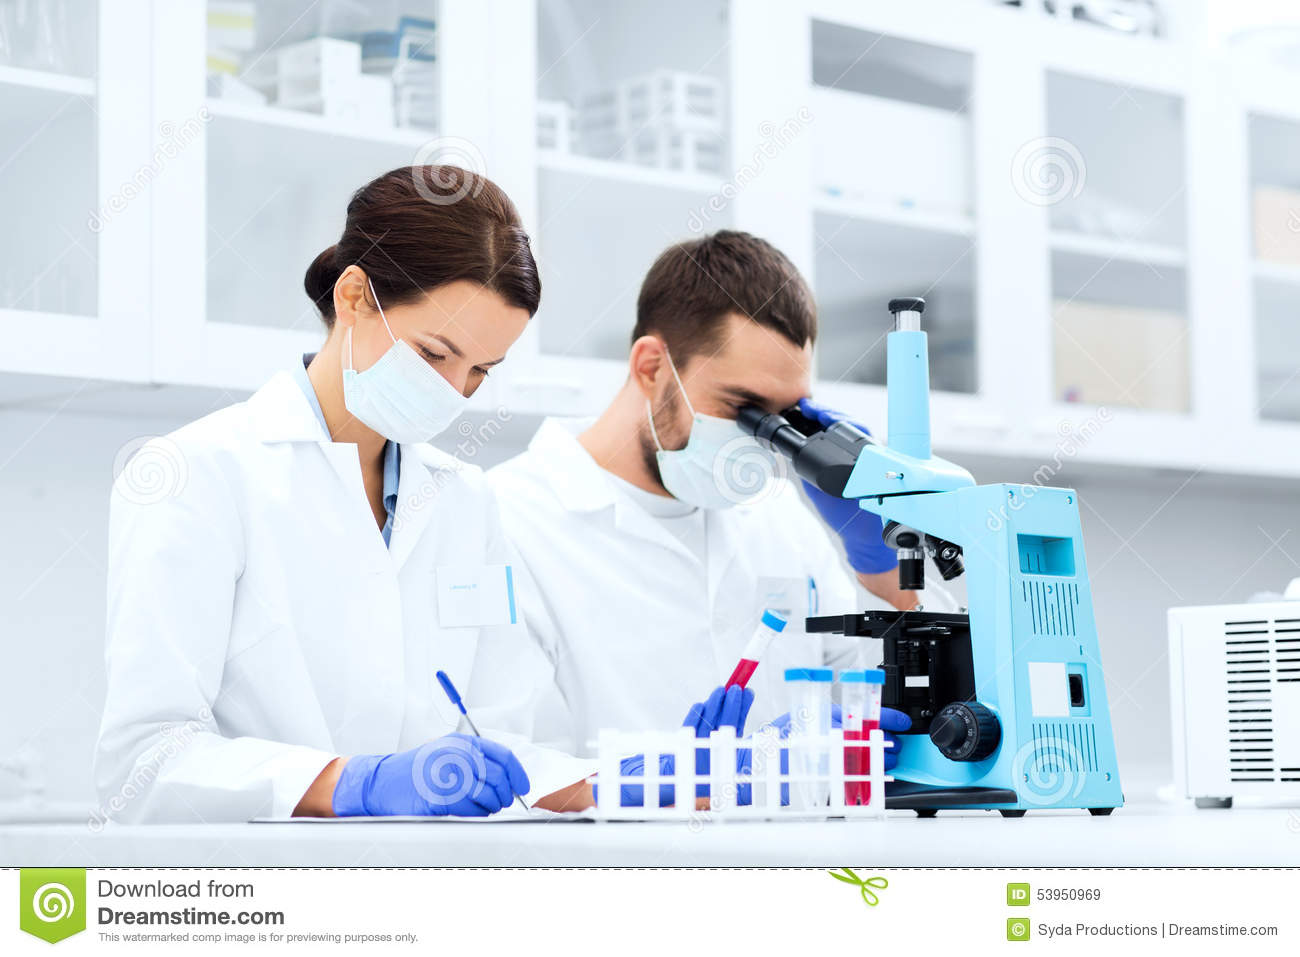 lab science test scientists technology tube chemistry biology microscope laboratory clipboard clinical concept